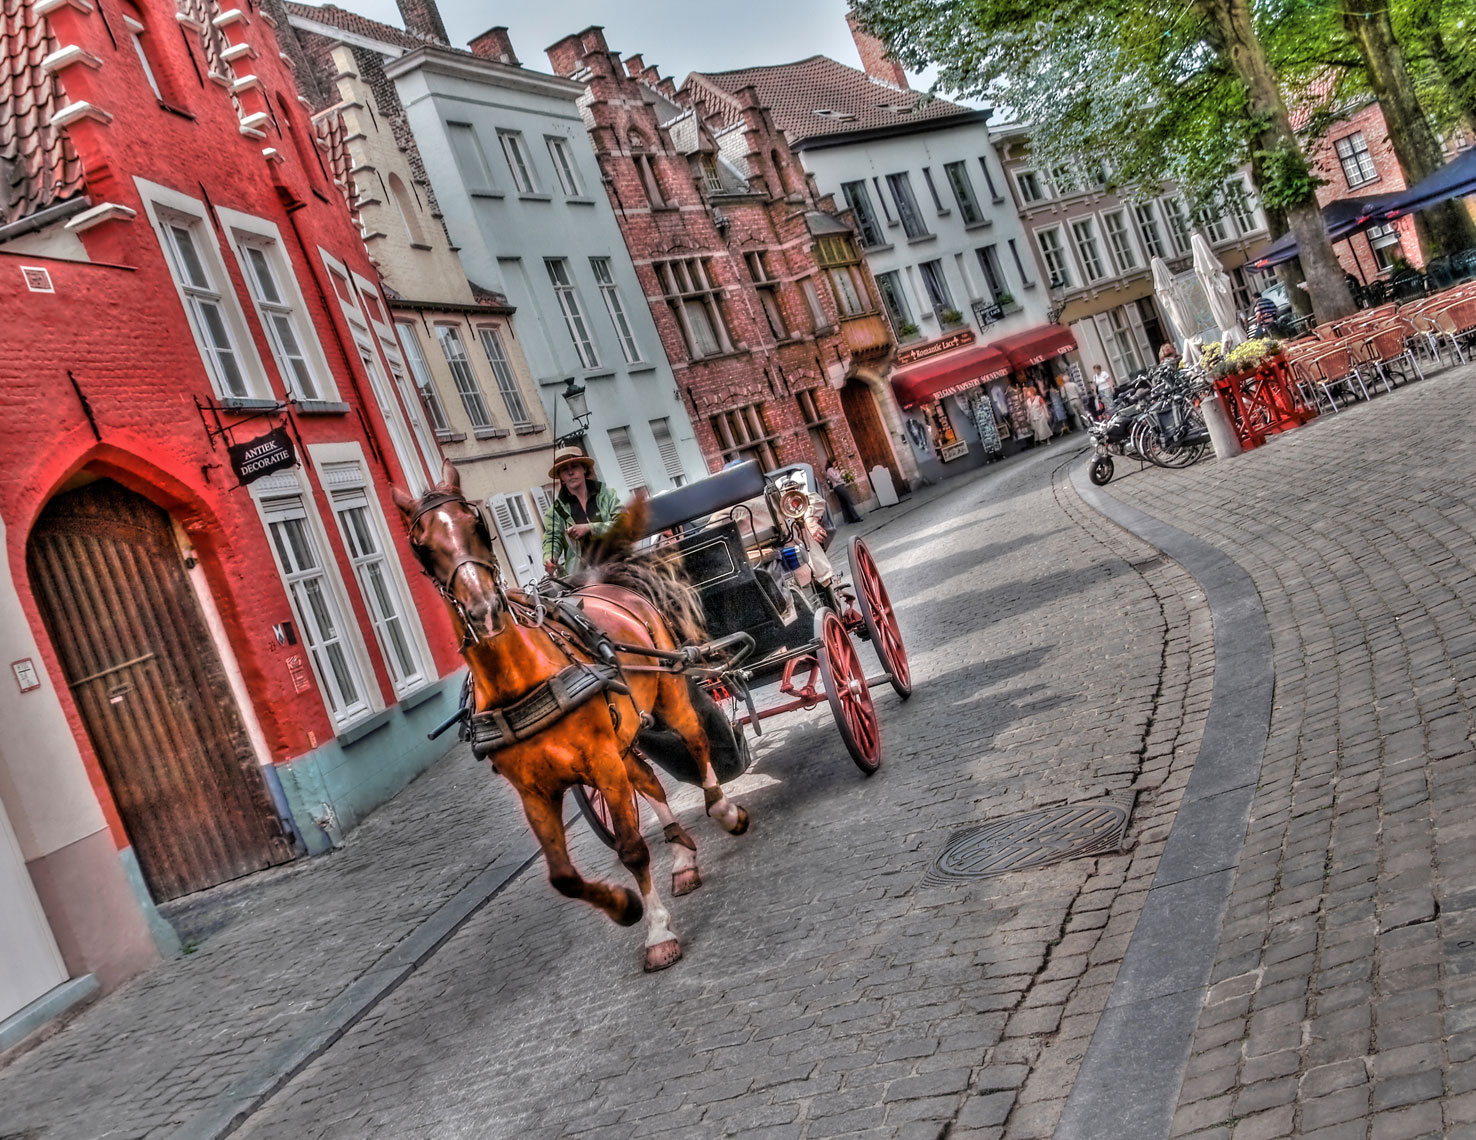 Horse and buggy/cobblestone sidewalk/old buildings/location photography